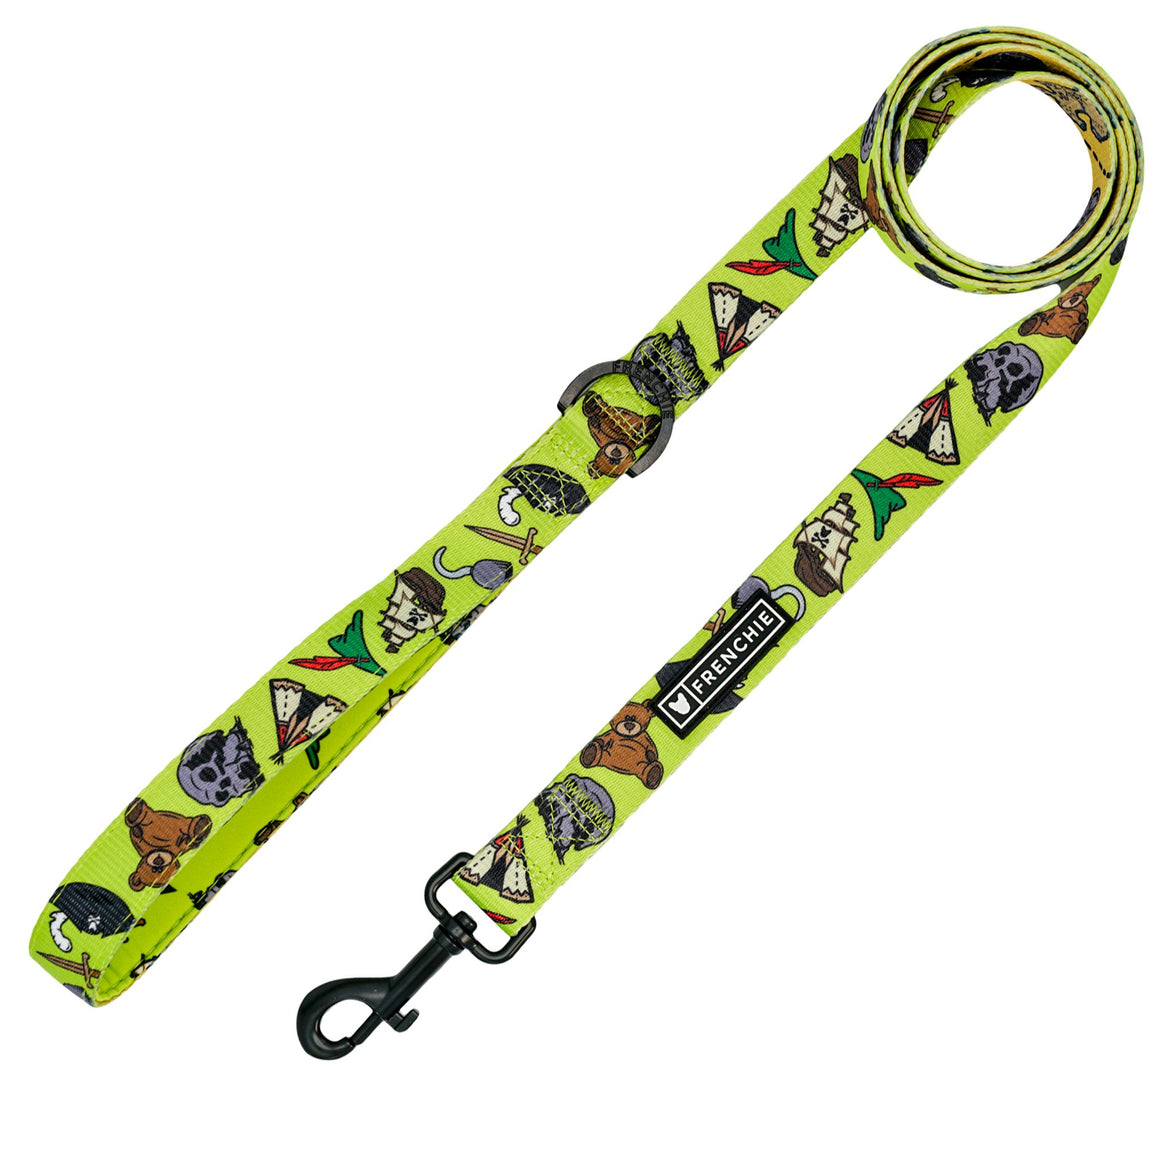 Frenchie Comfort Leash - Pirate's Cove